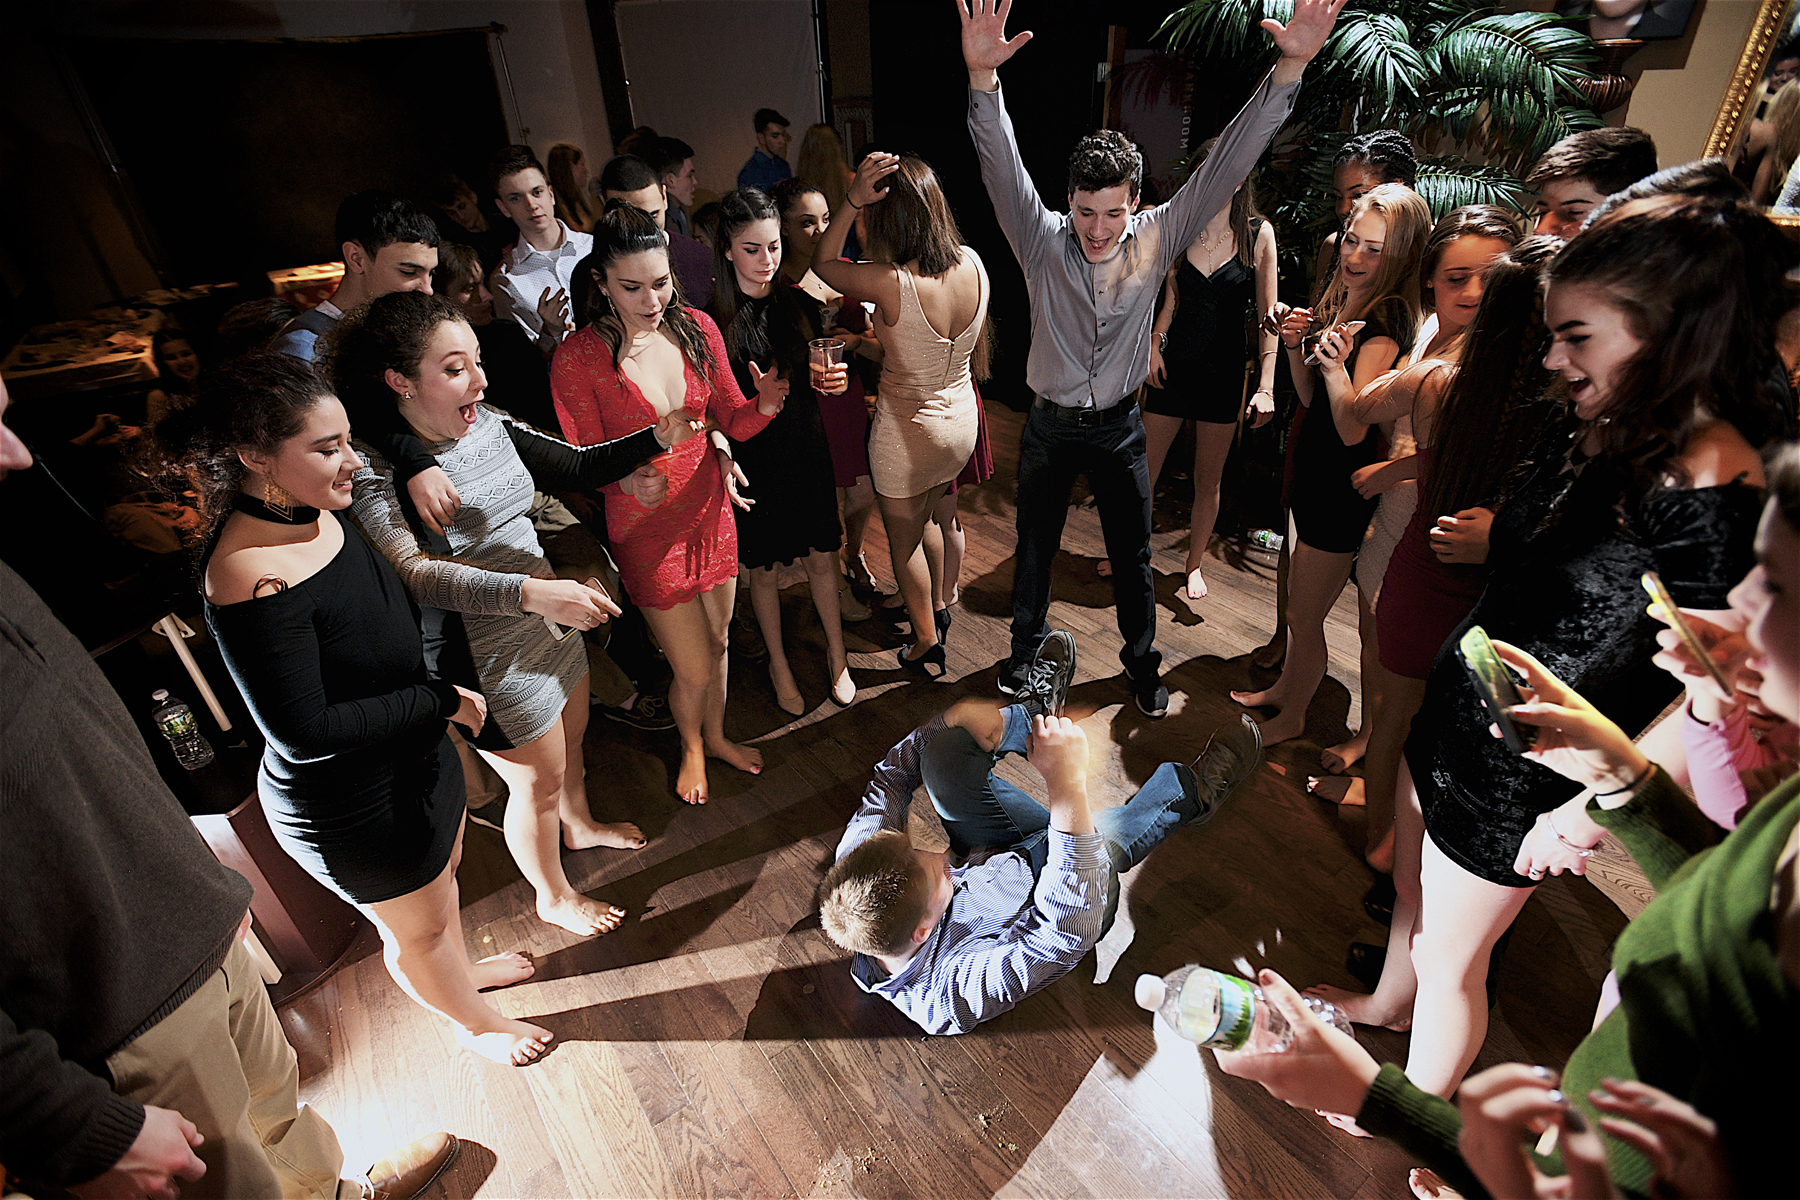 Private party rental space in the hudson valley